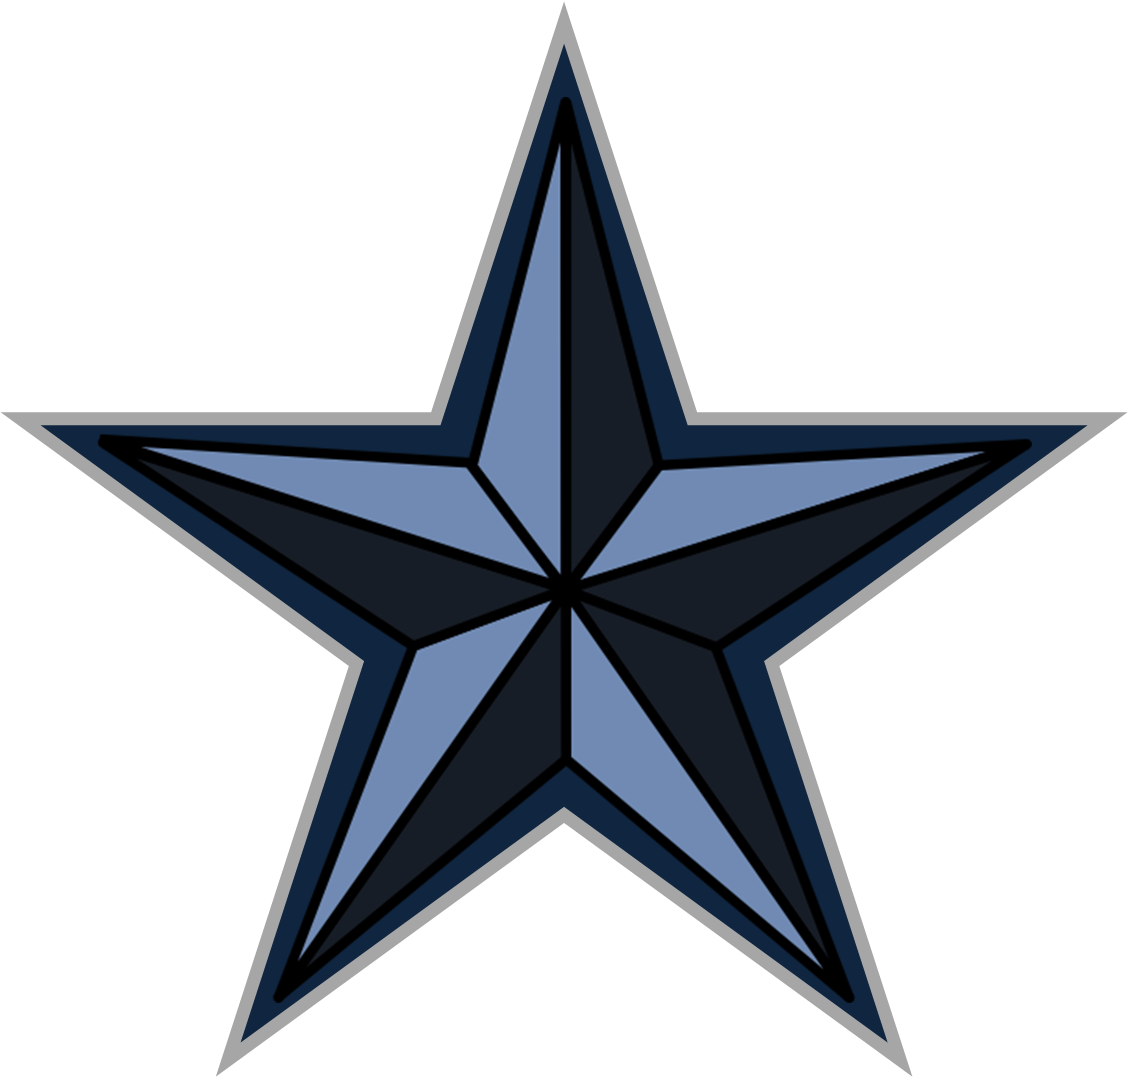 Navy blue star clipart clipart stock 28+ Collection of Navy Blue Star Clipart | High quality, free ... clipart stock